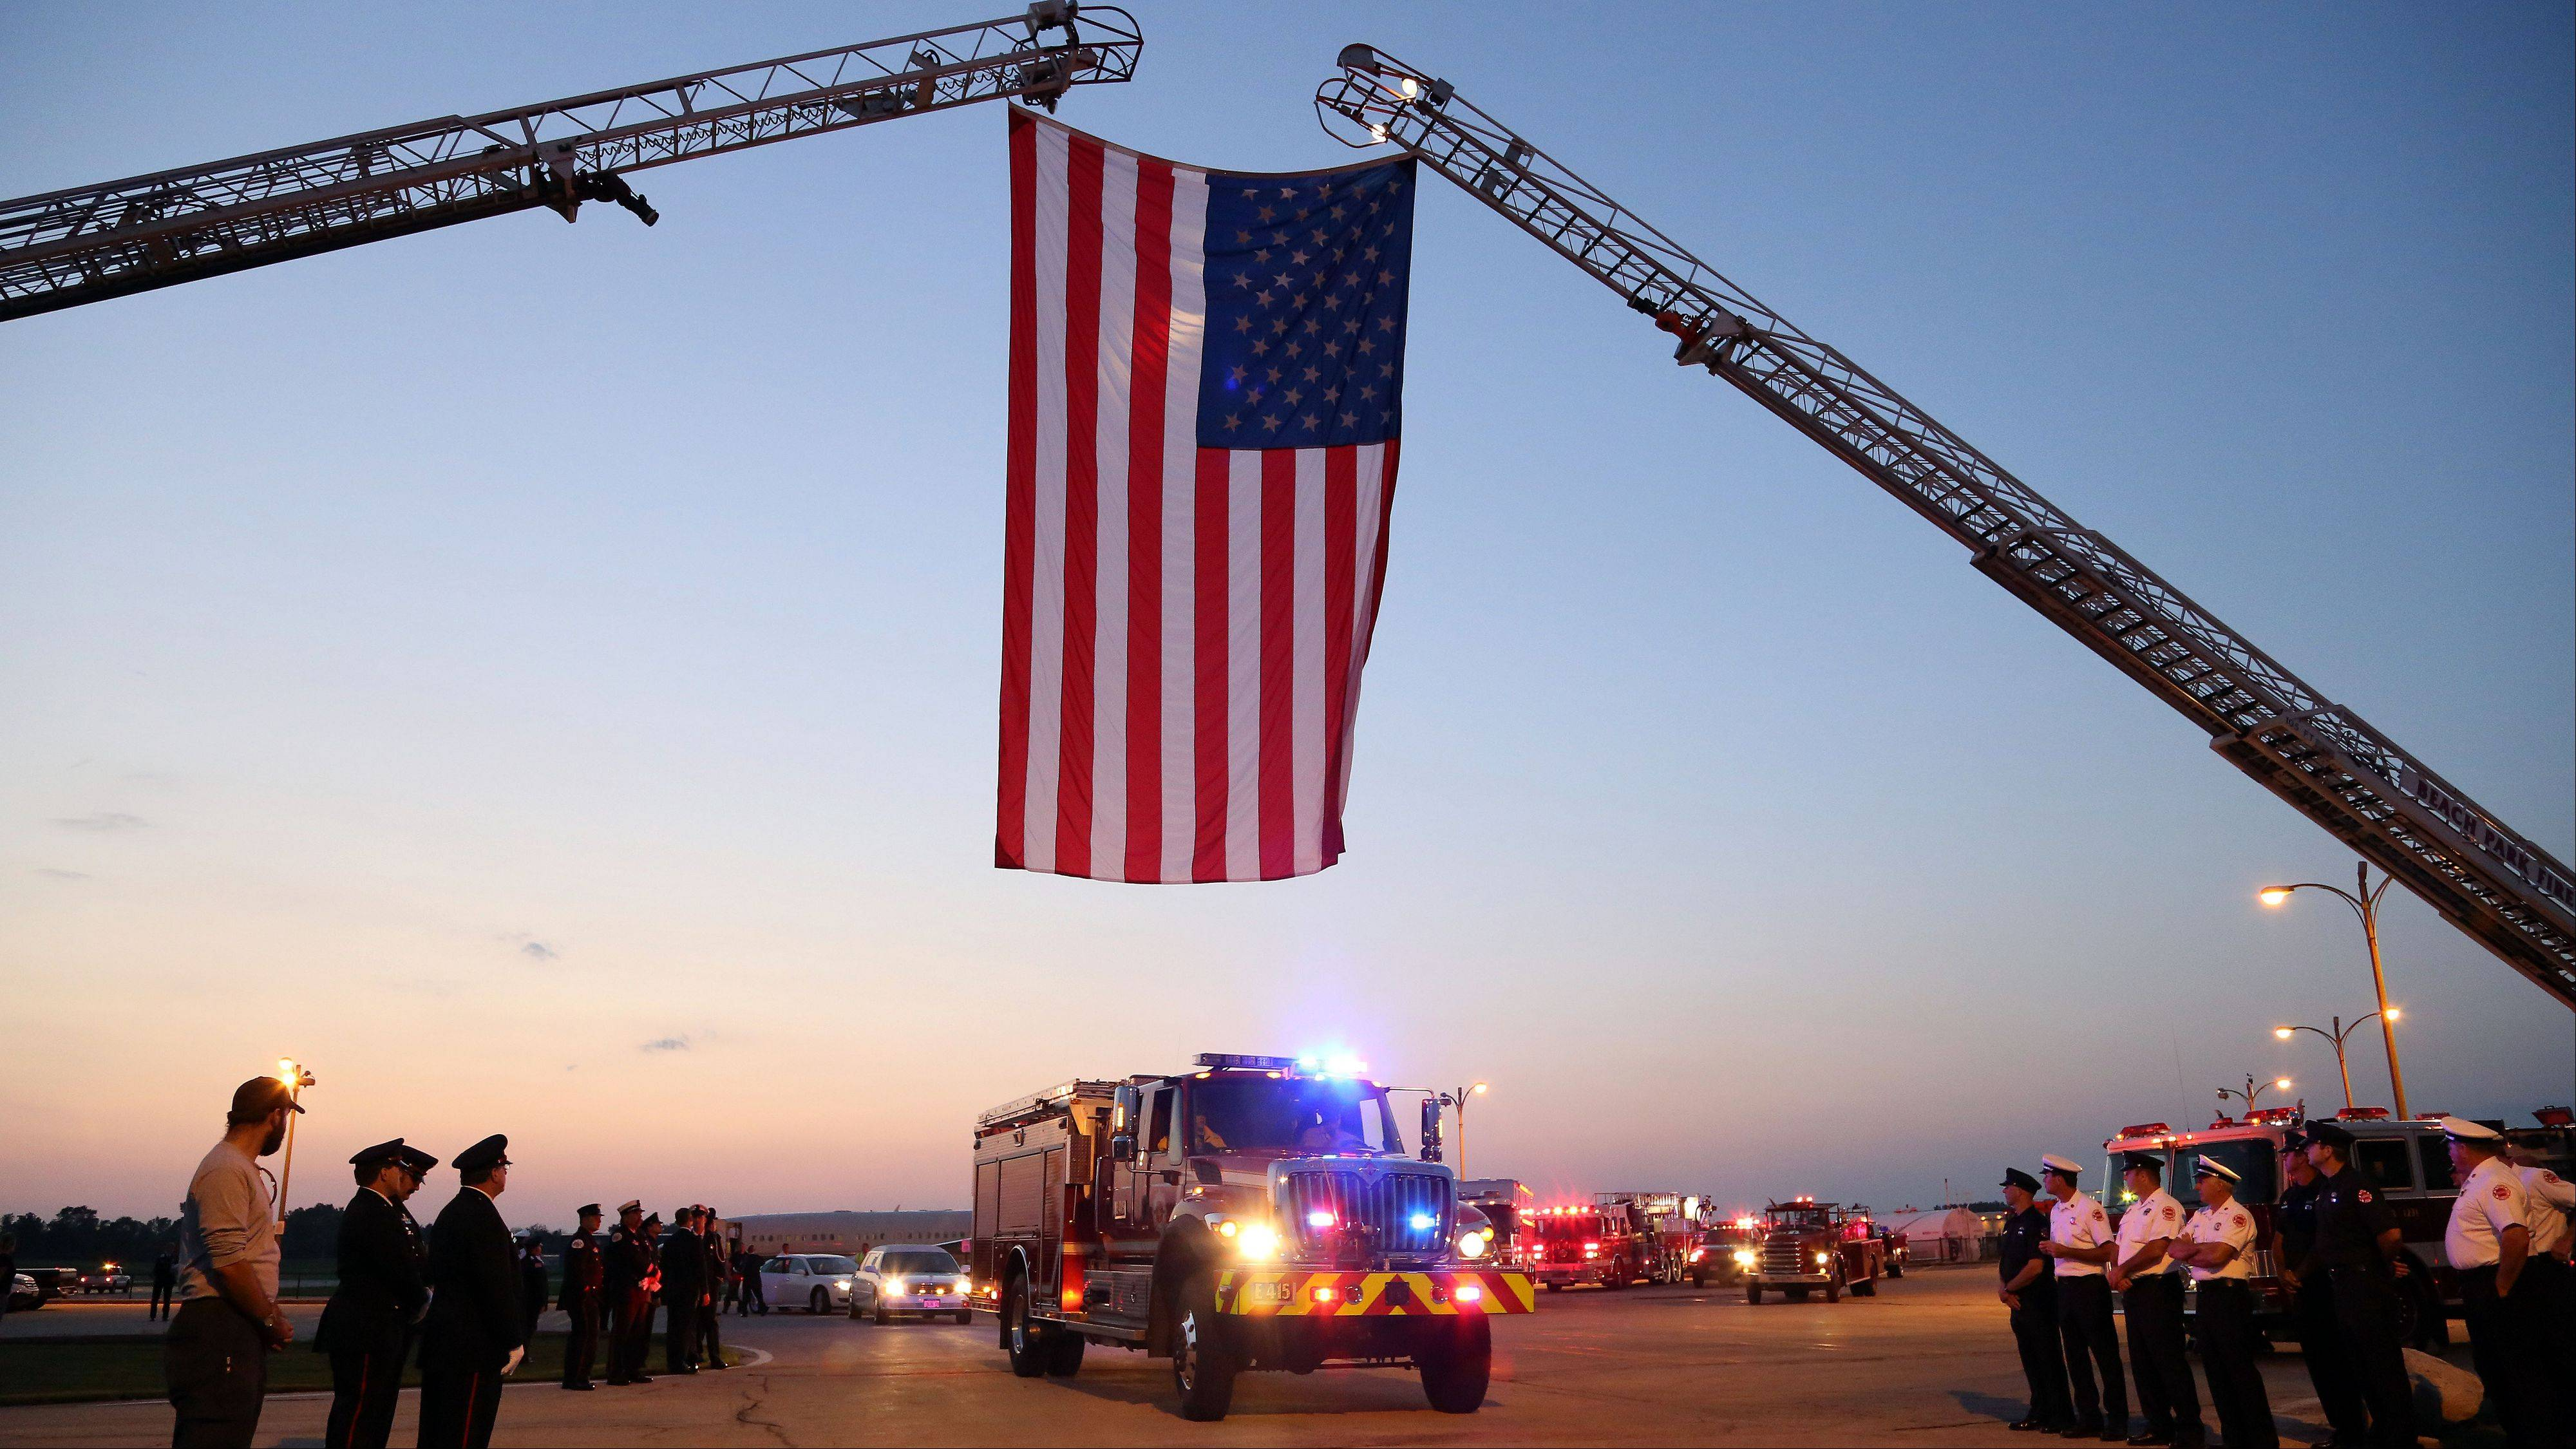 Fire trucks pass under the American flag during a ceremony for Anthony Rose of Beach Park at Waukegan Regional Airport Wednesday night. Rose was killed June 30 along with other members of the Granite Mountain Hotshots while battling a wildfire north of Phoenix.